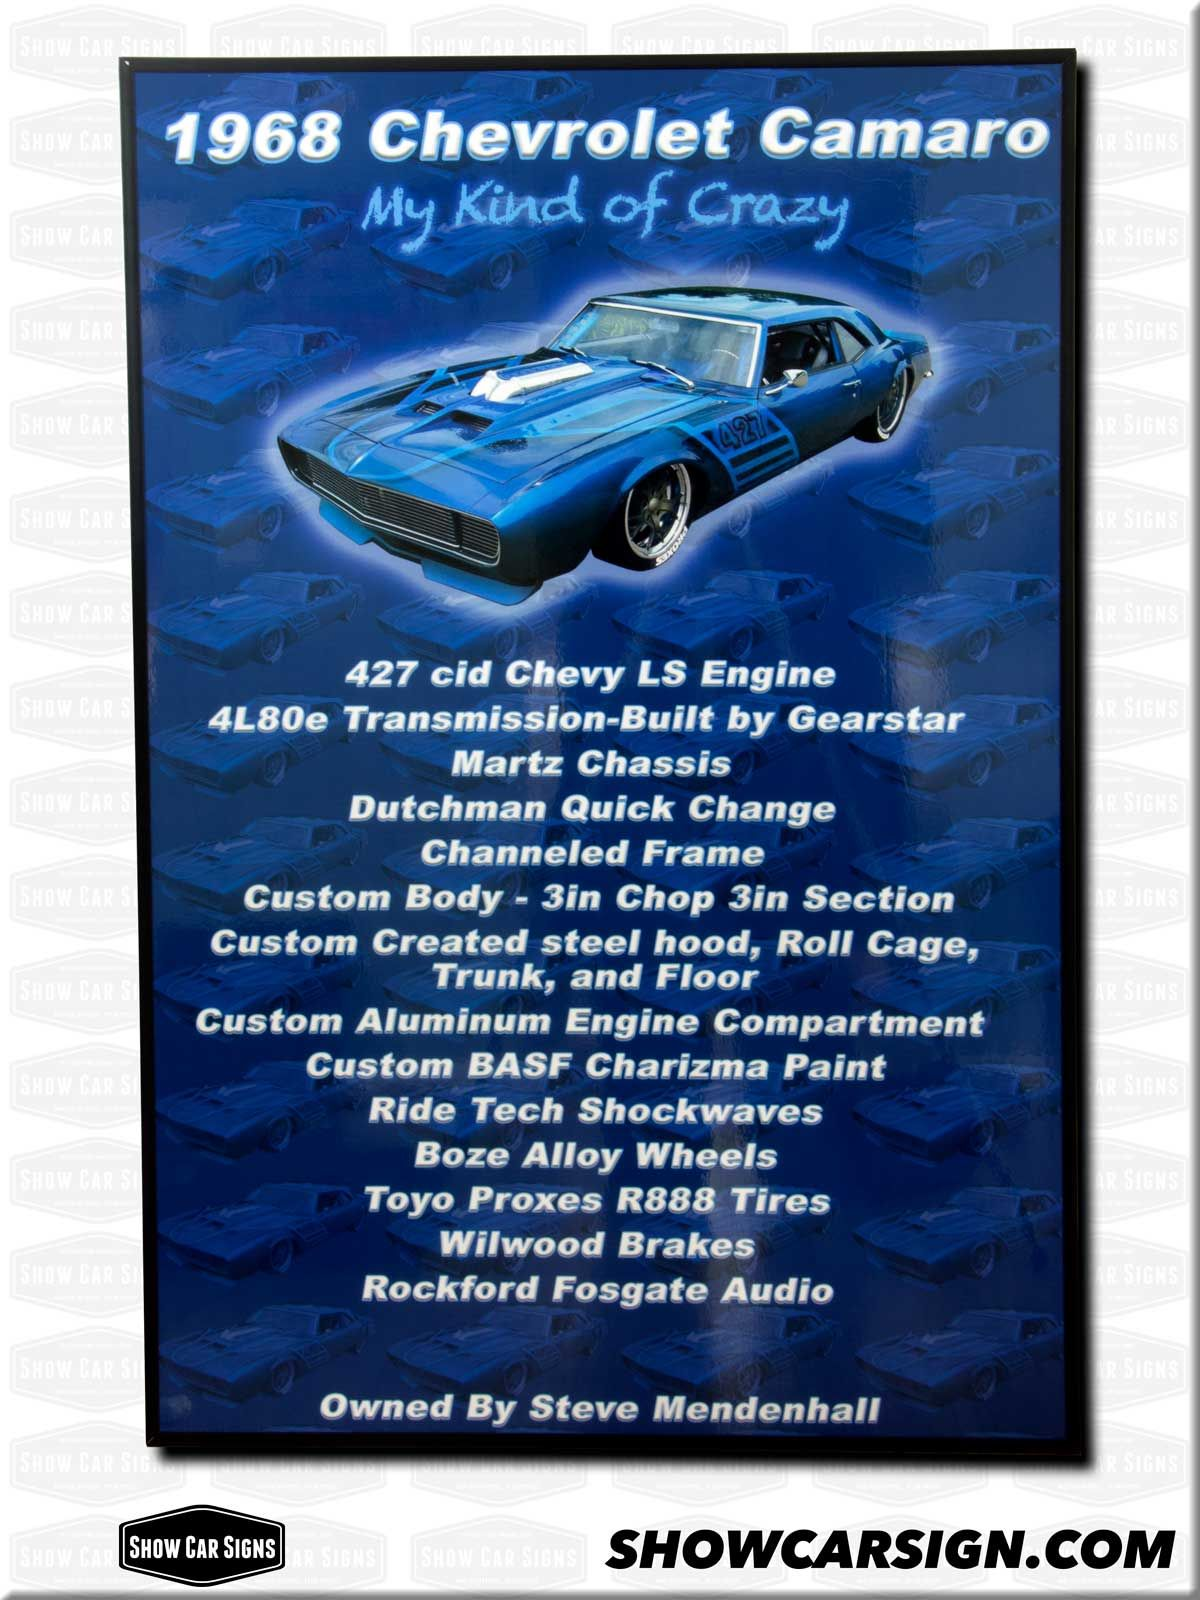 Chevrolet Camaro Car Show Board Car Show Signs Pinterest - Car show signs